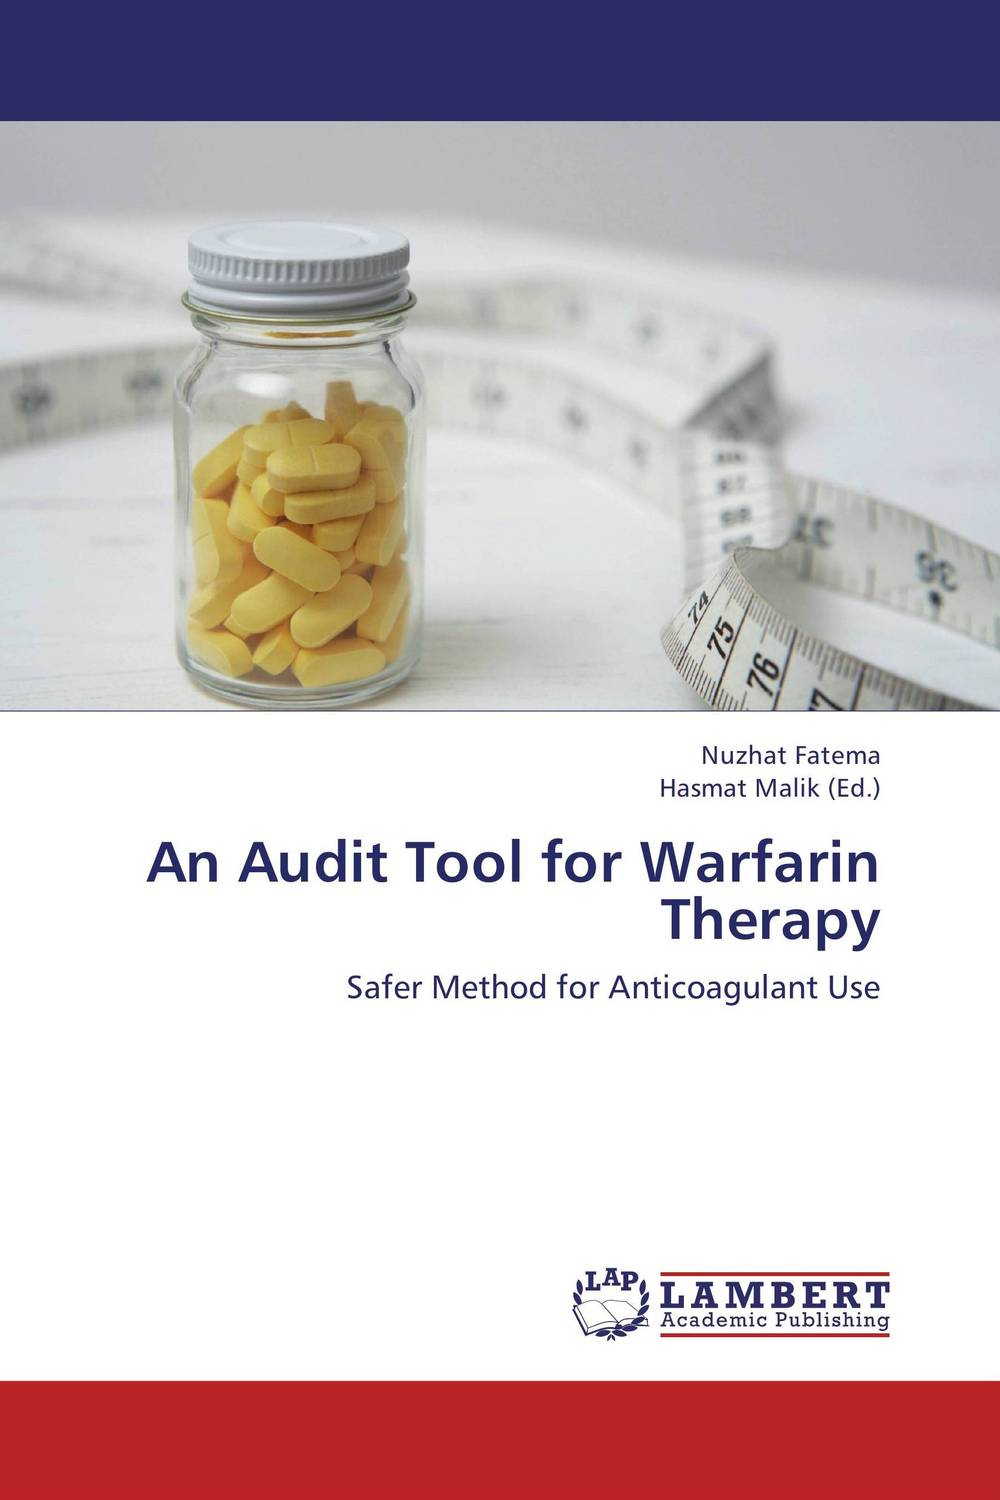 An Audit Tool for Warfarin Therapy